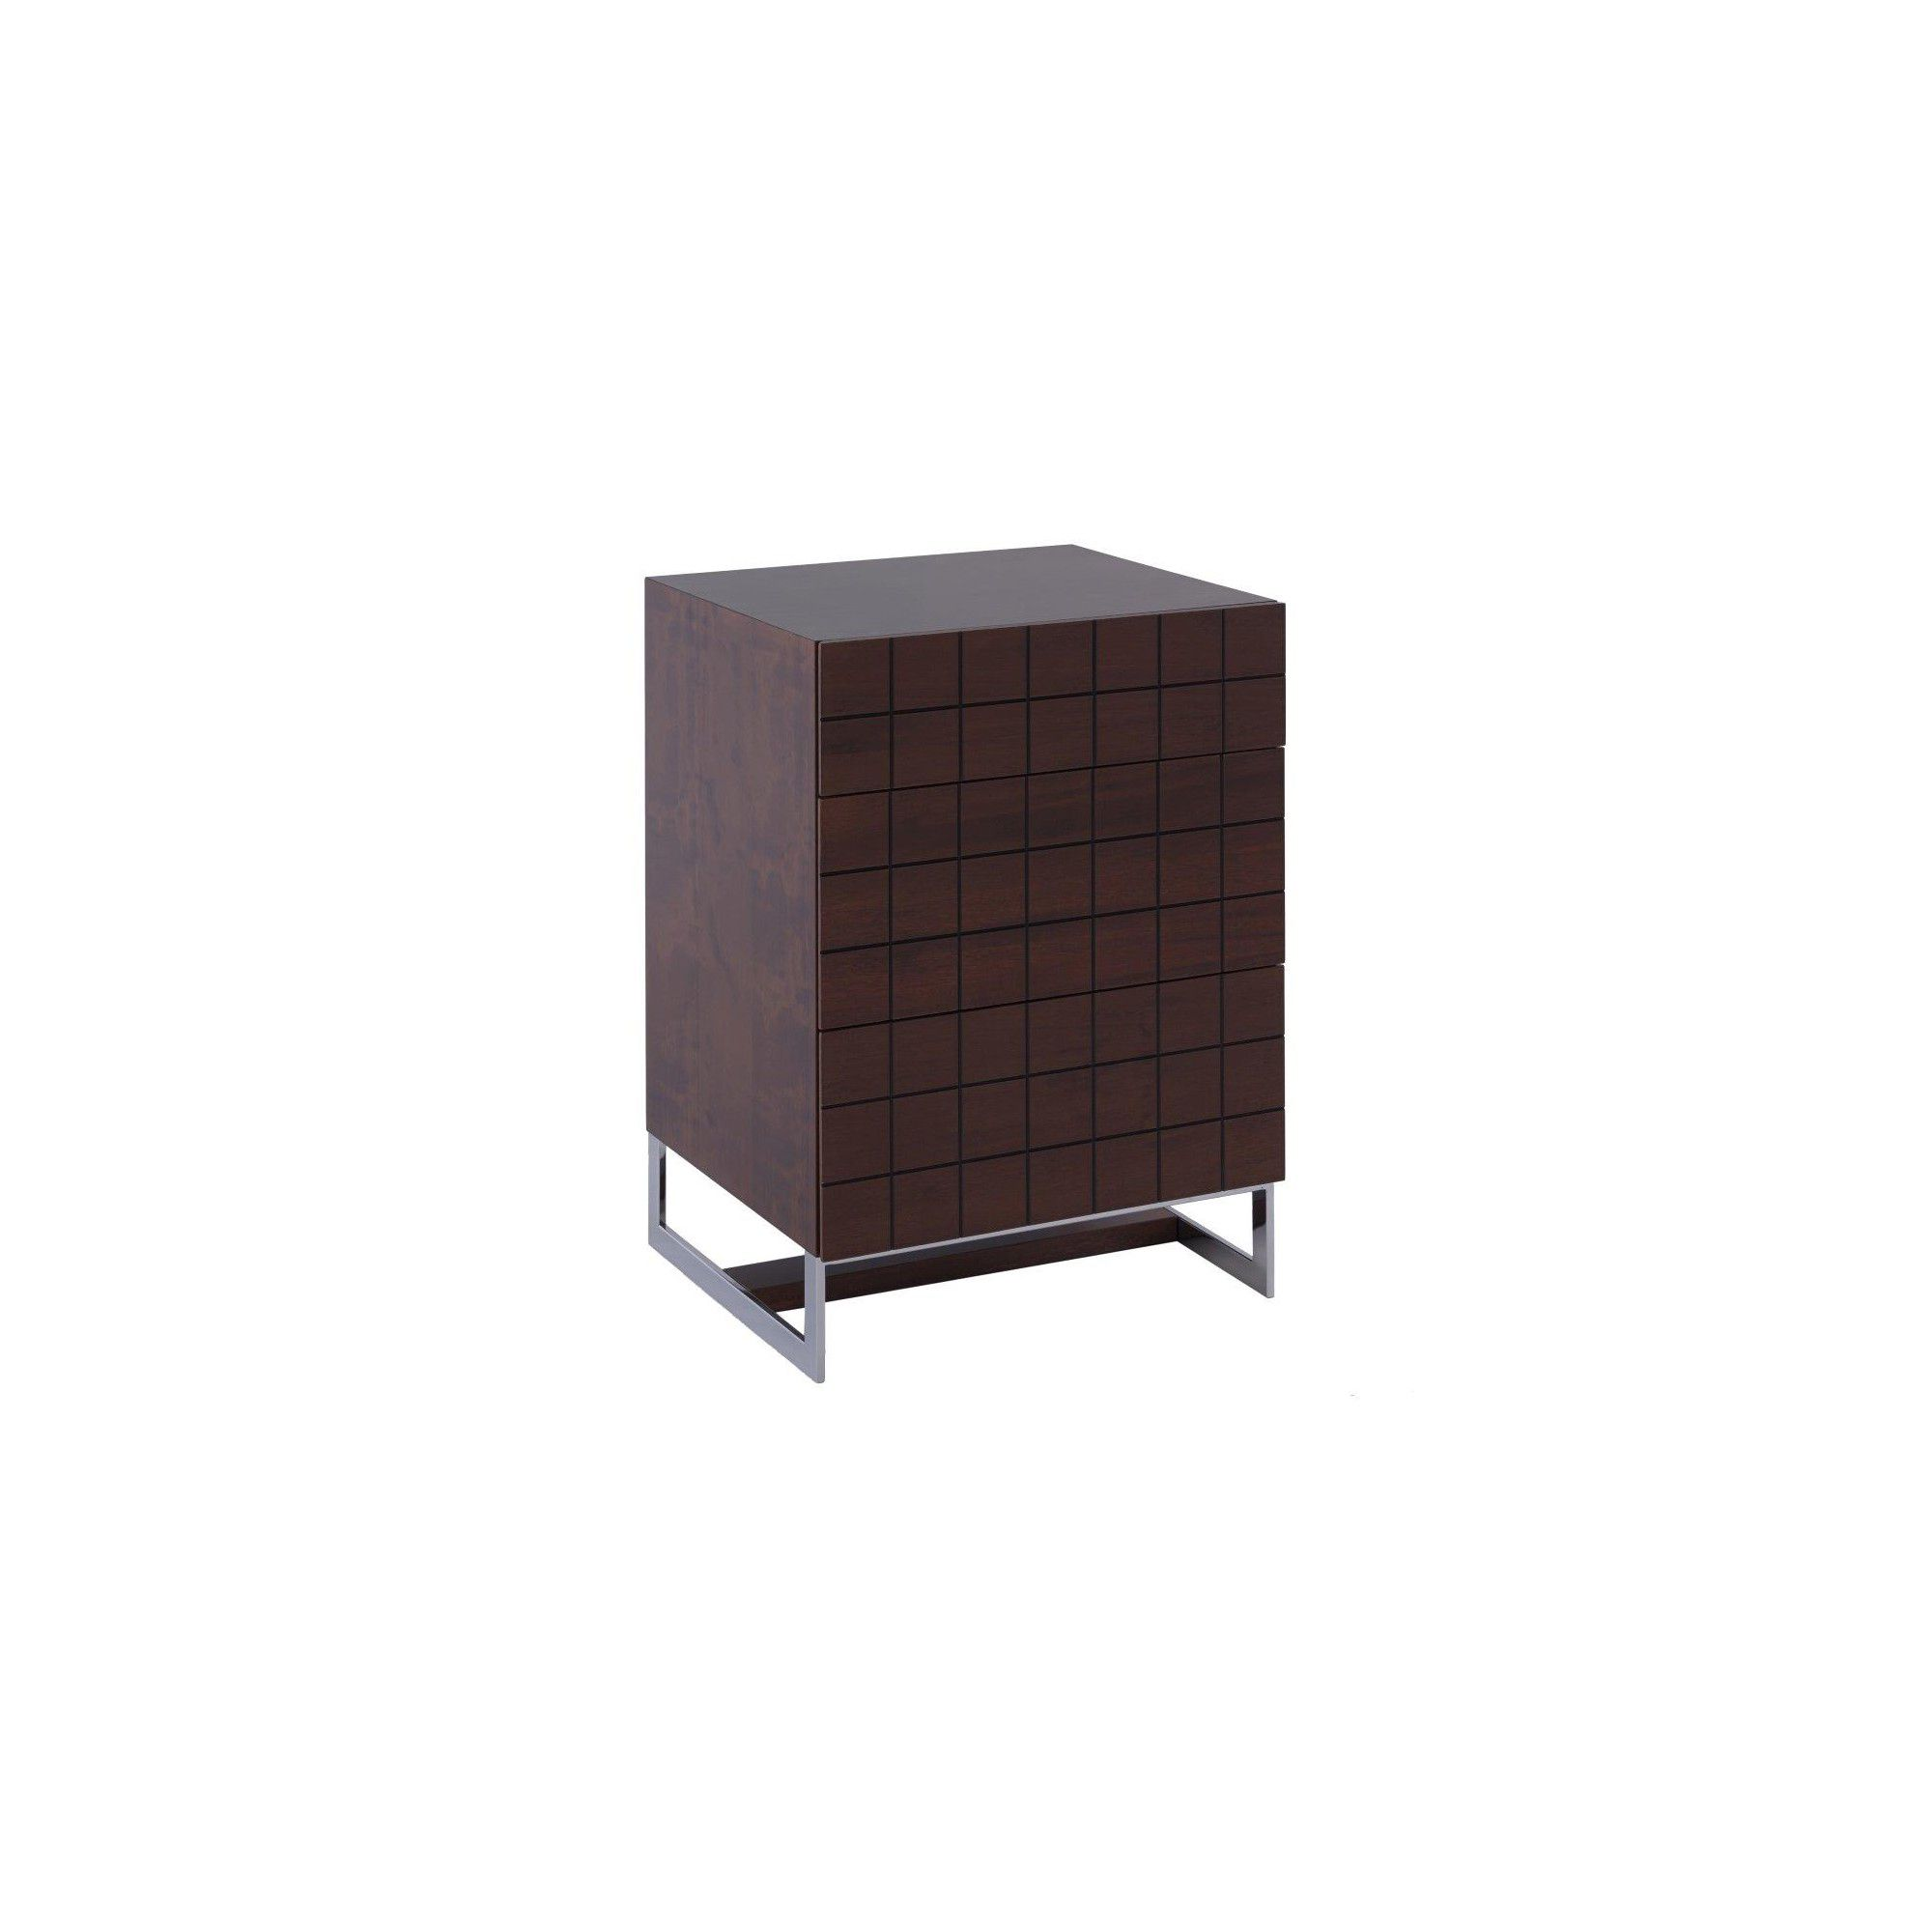 Gillmore Space Barcelona 3 Drawer Chest - Walnut at Tesco Direct